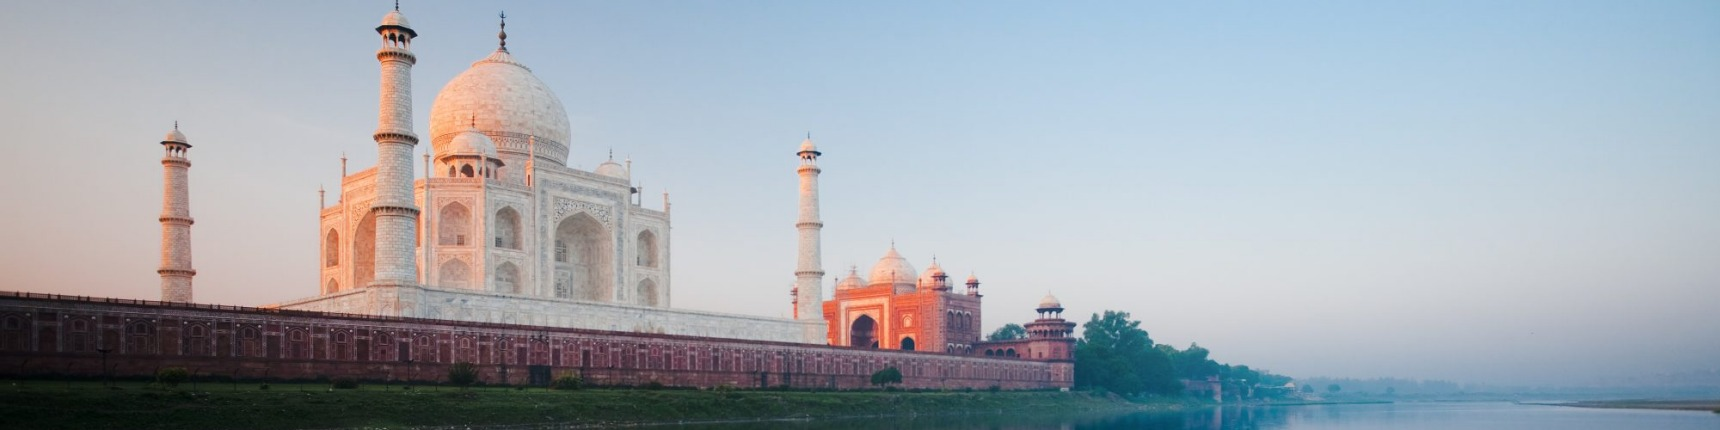 South Asia Travel Taj